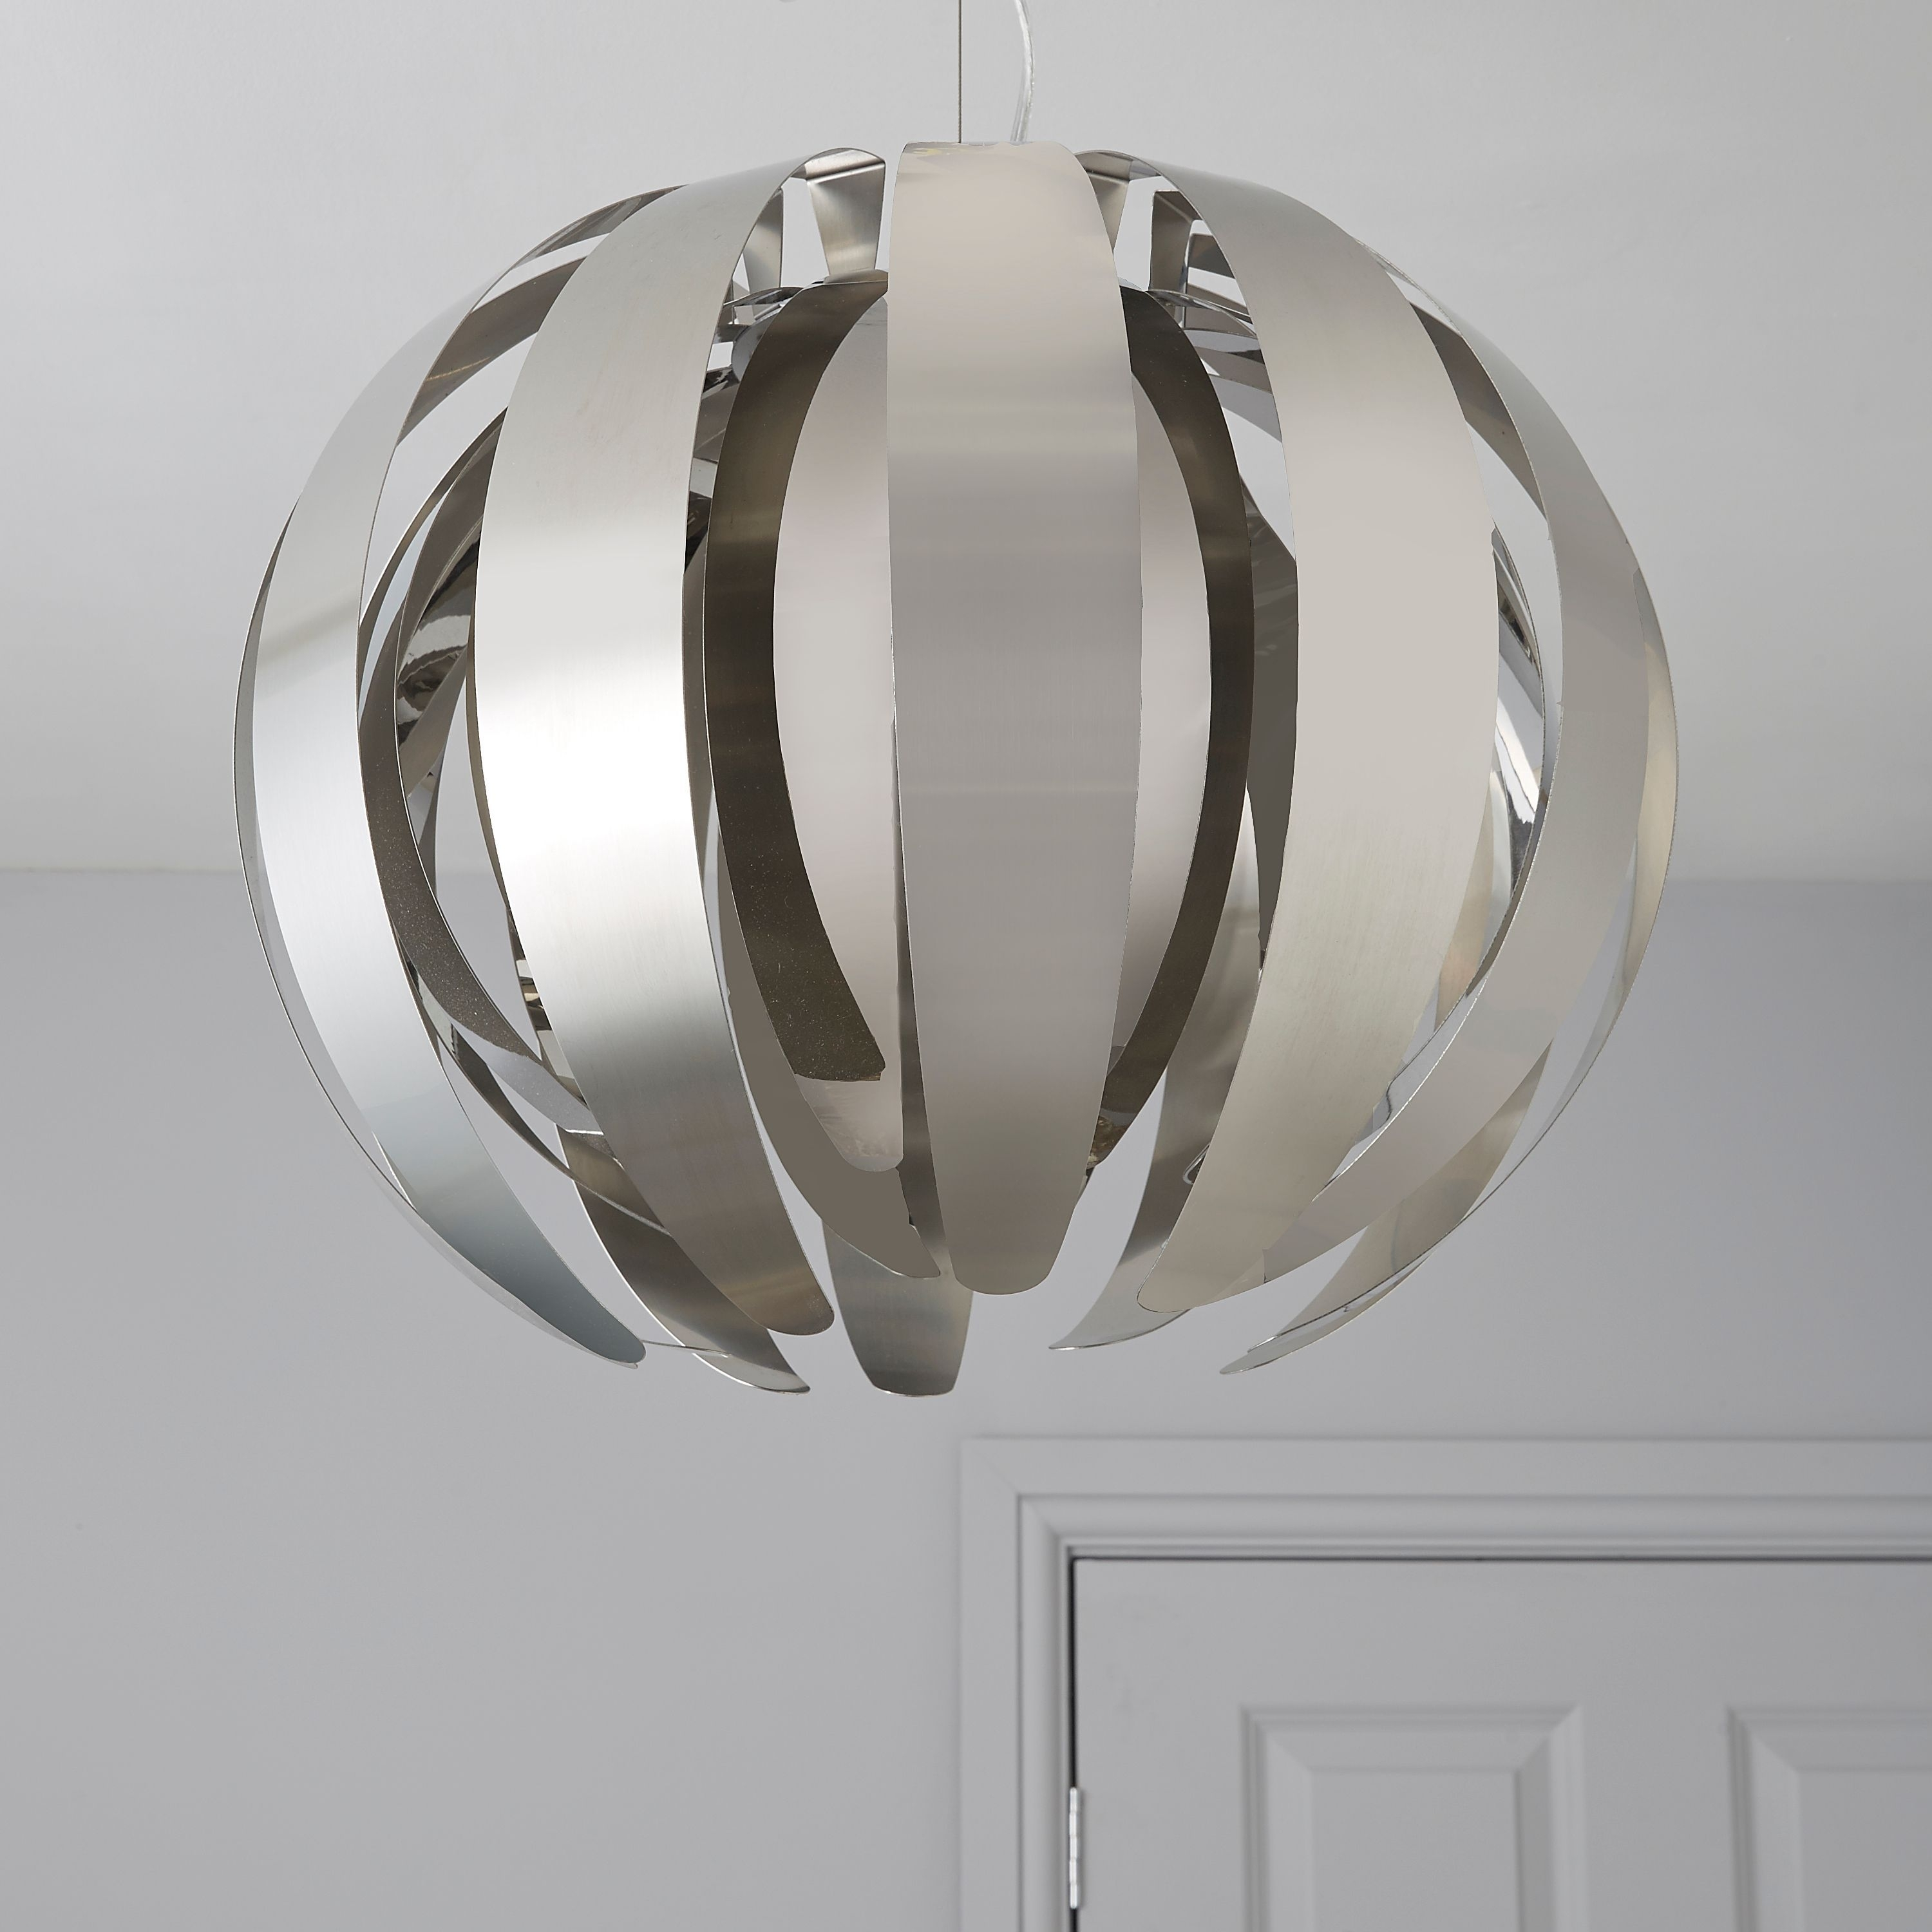 Chrome Ceiling Light: 15 Photo Of Outdoor Ceiling Lights At B&q